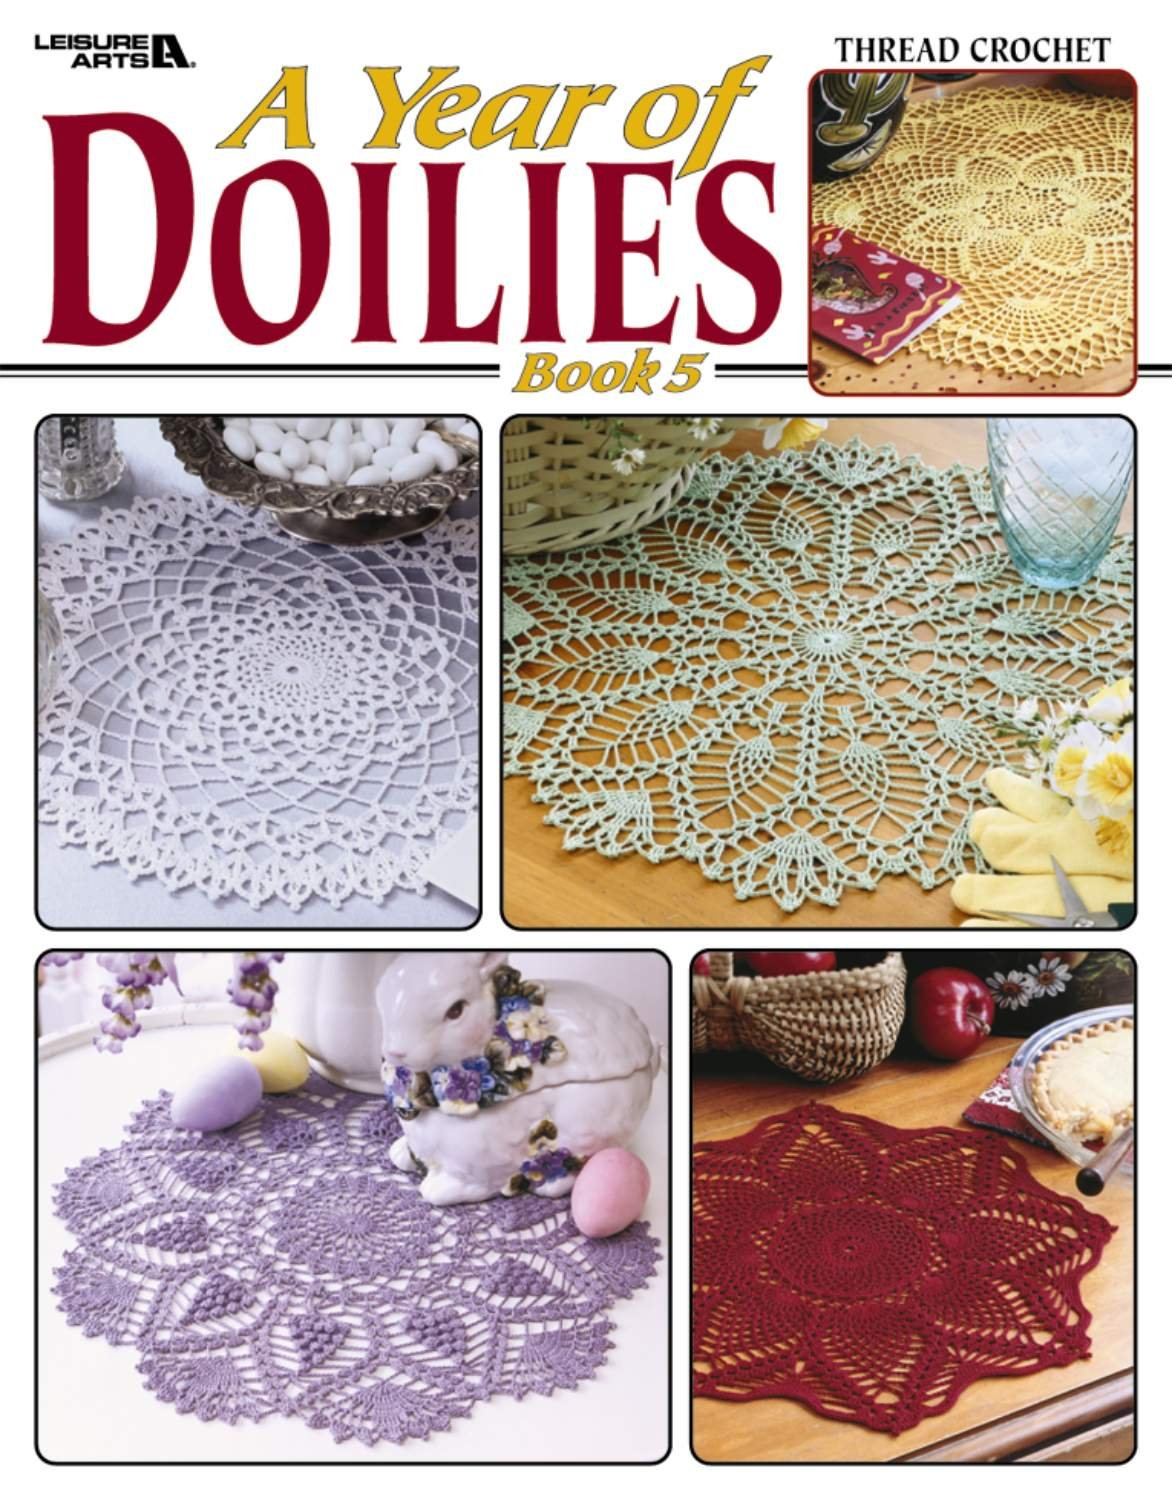 Amazon.com: Leisure Arts: A Year of Doilies, Book 5: Leisure Arts: Arts,  Crafts & Sewing